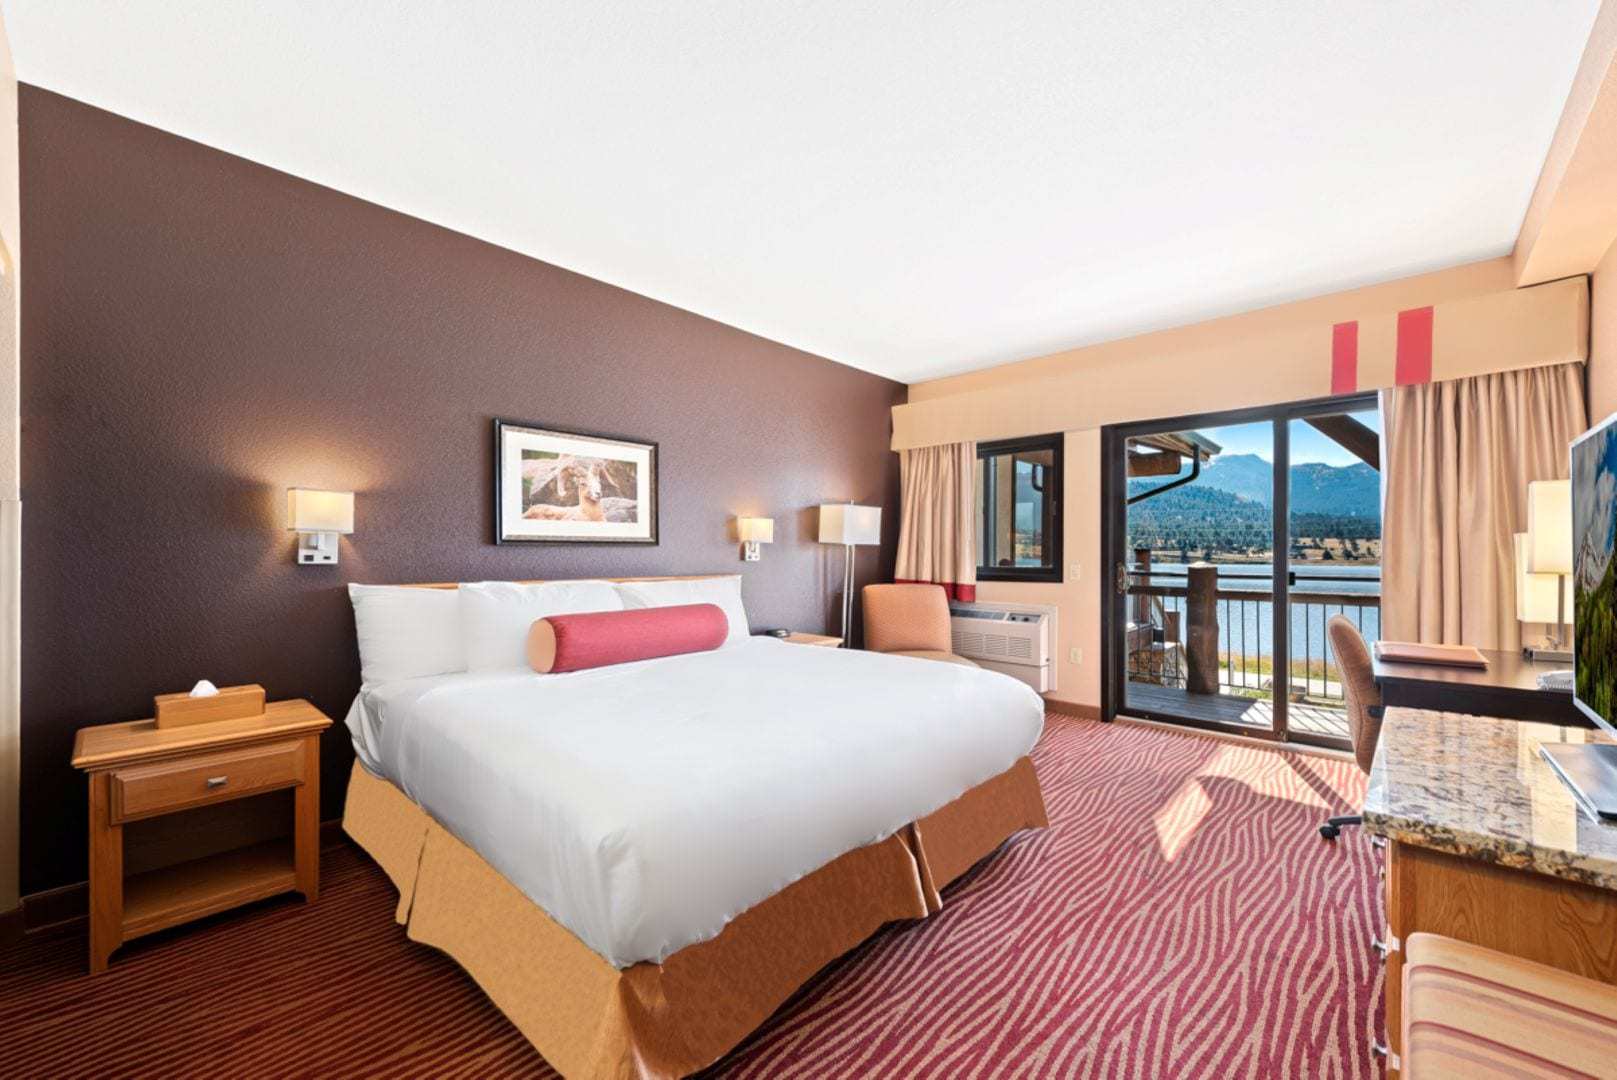 image of a room at the estes park resort